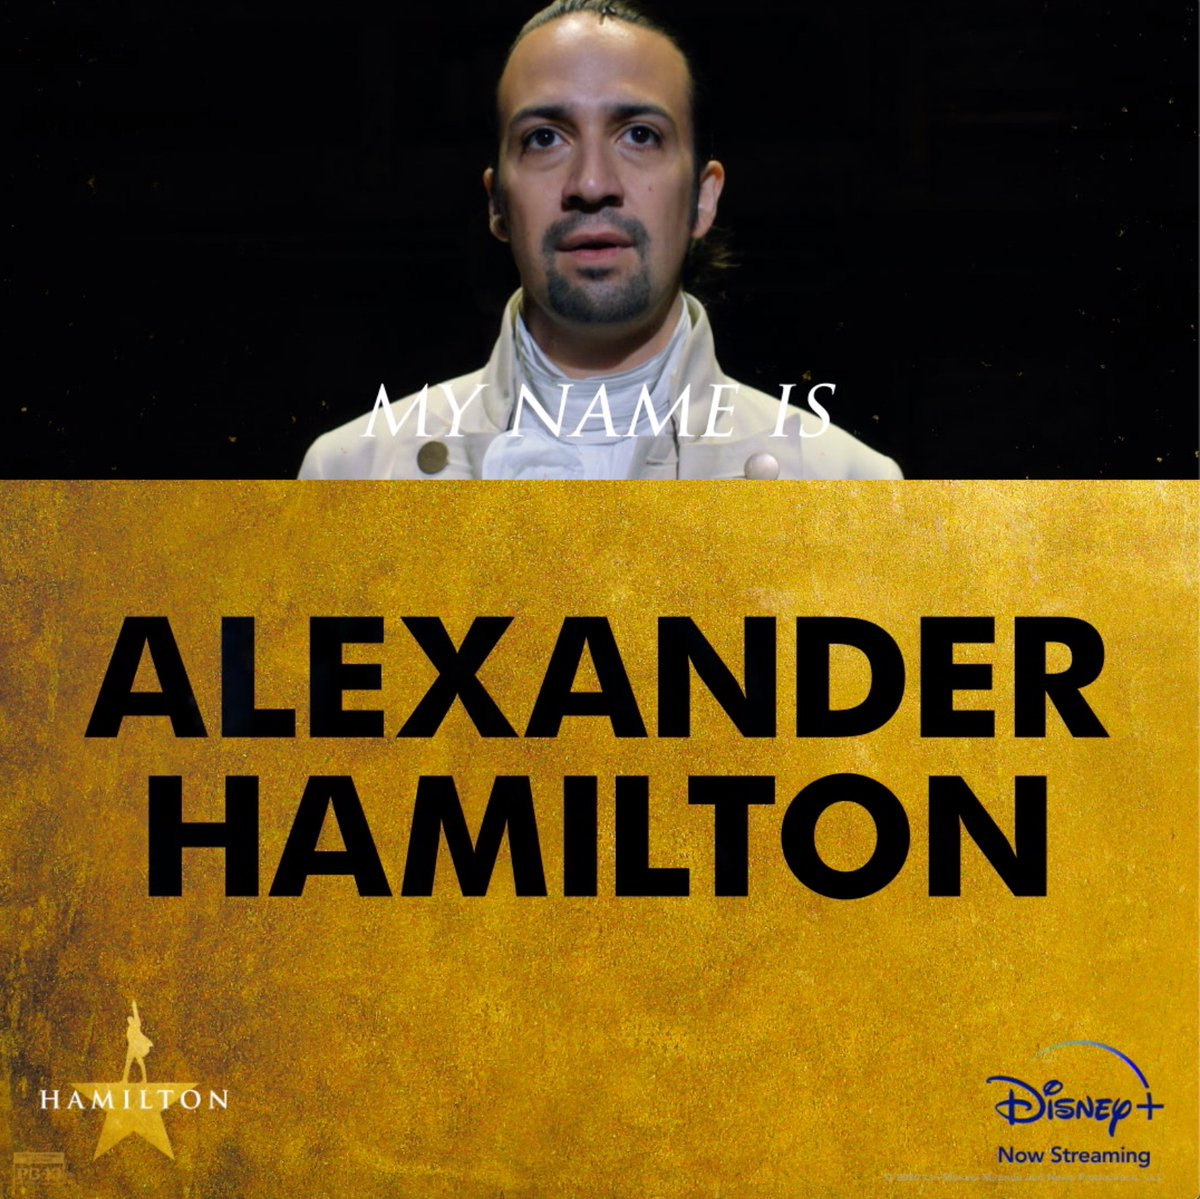 You don't have to wait any longer. Hamilton is now streaming on #DisneyPlus. ⭐️🎵 #Hamilfilm